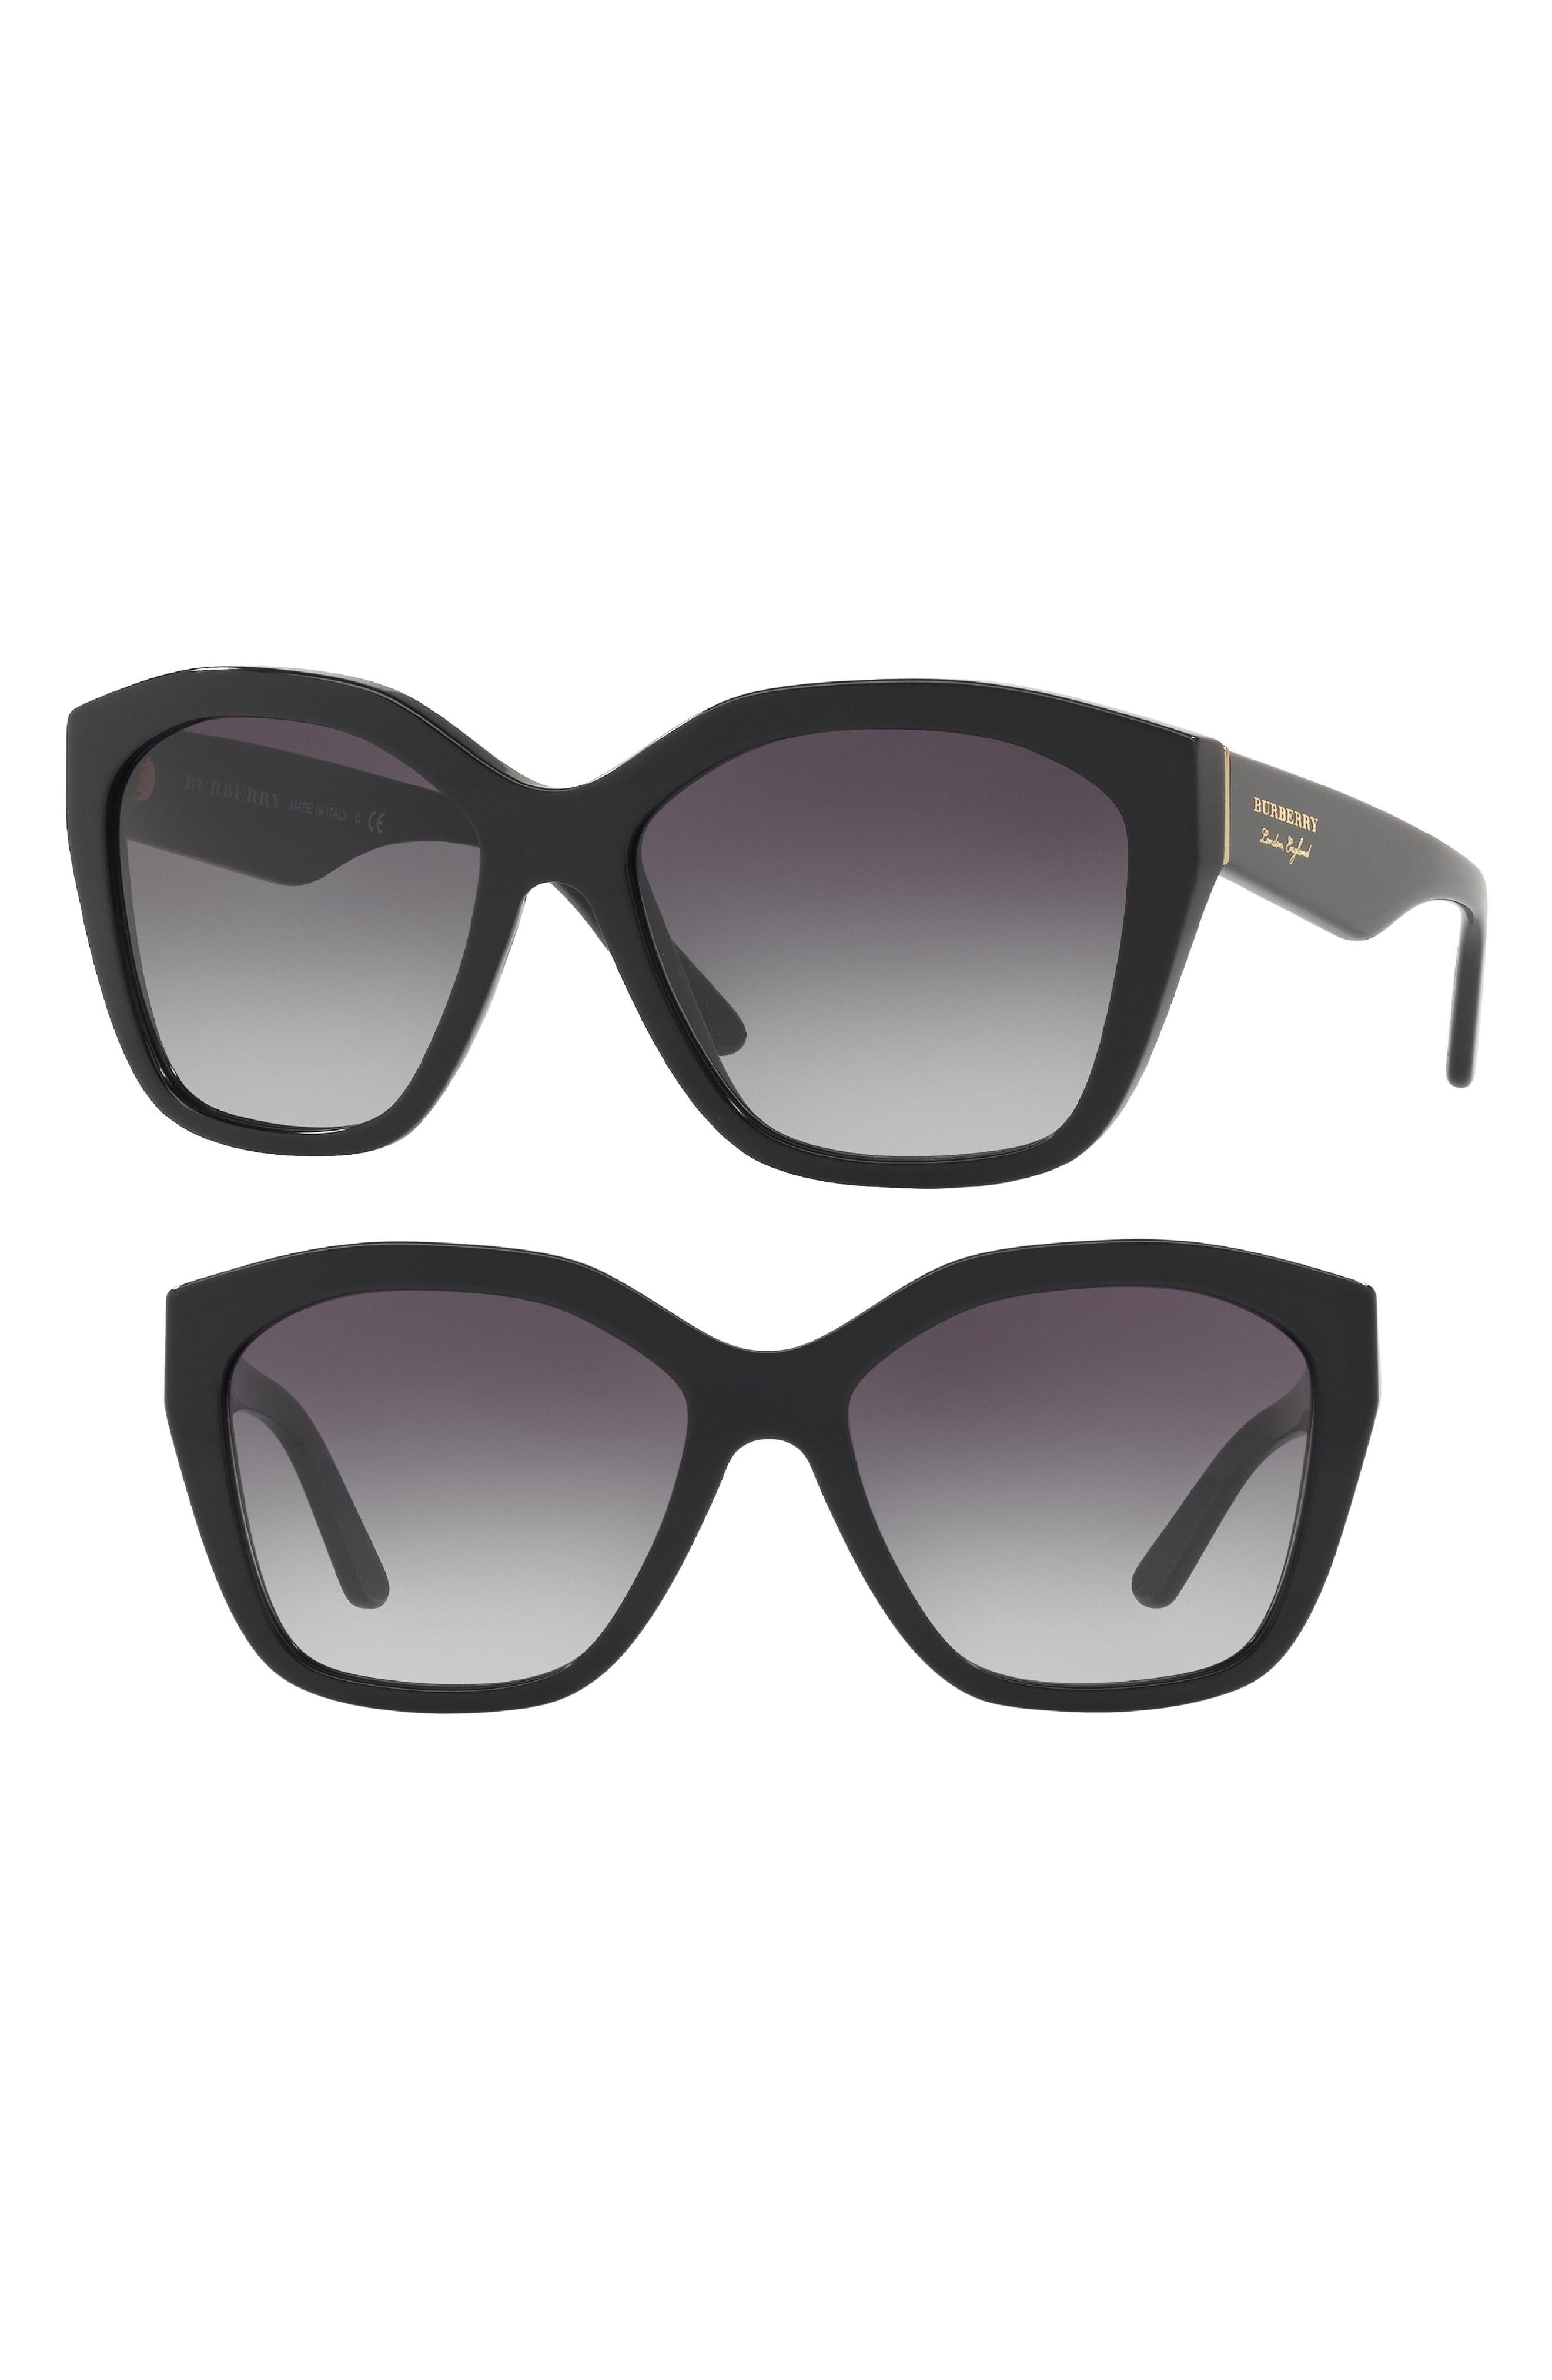 are burberry sunglasses good